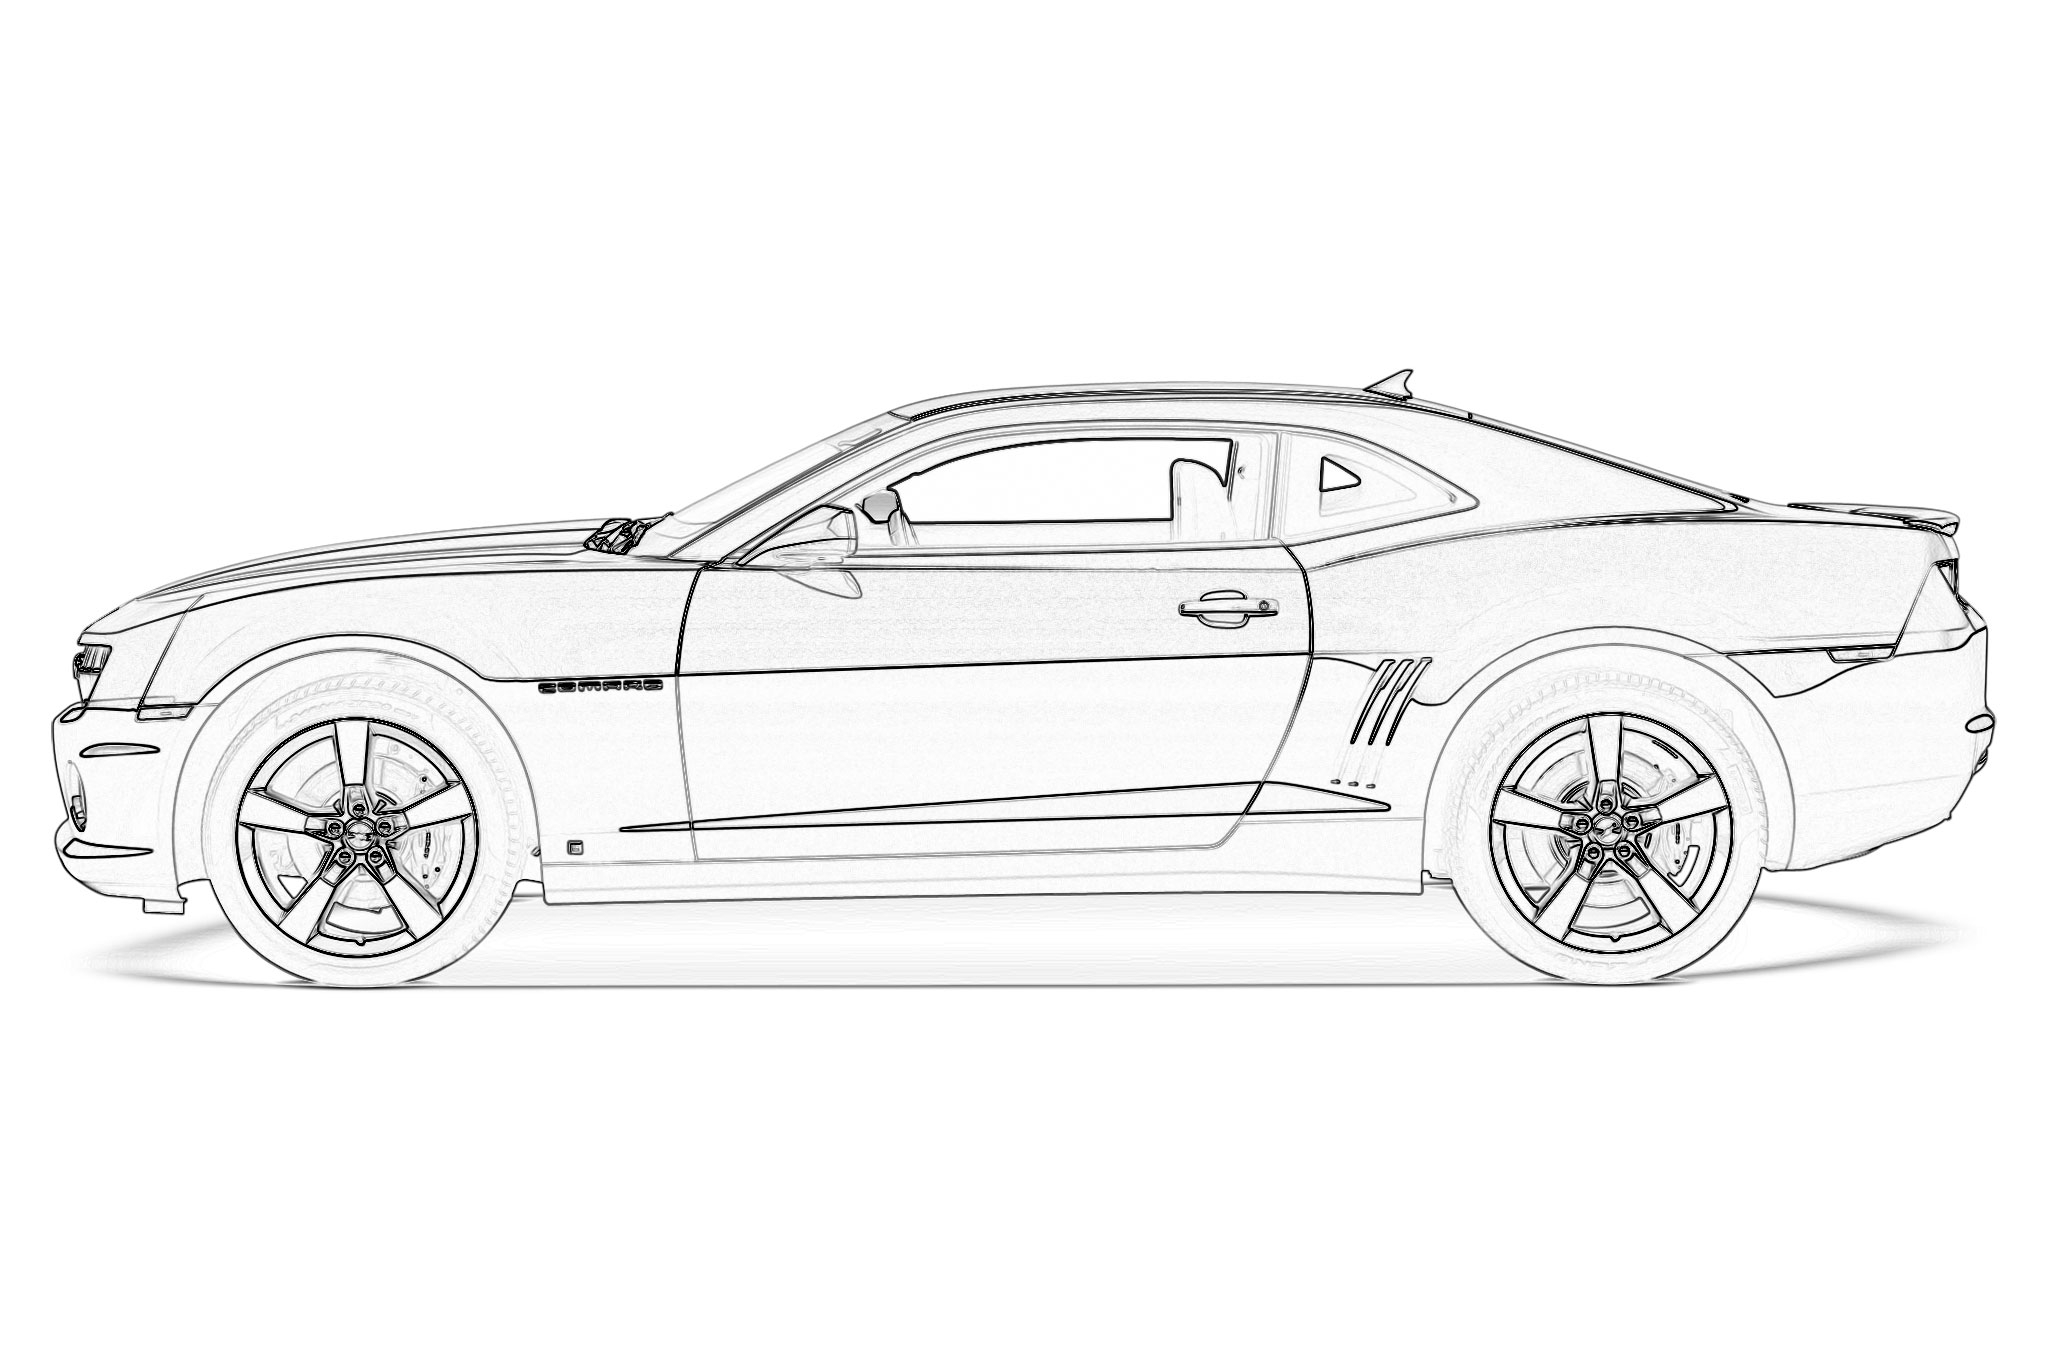 25 Camaro Coloring Pages Compilation | FREE COLORING PAGES